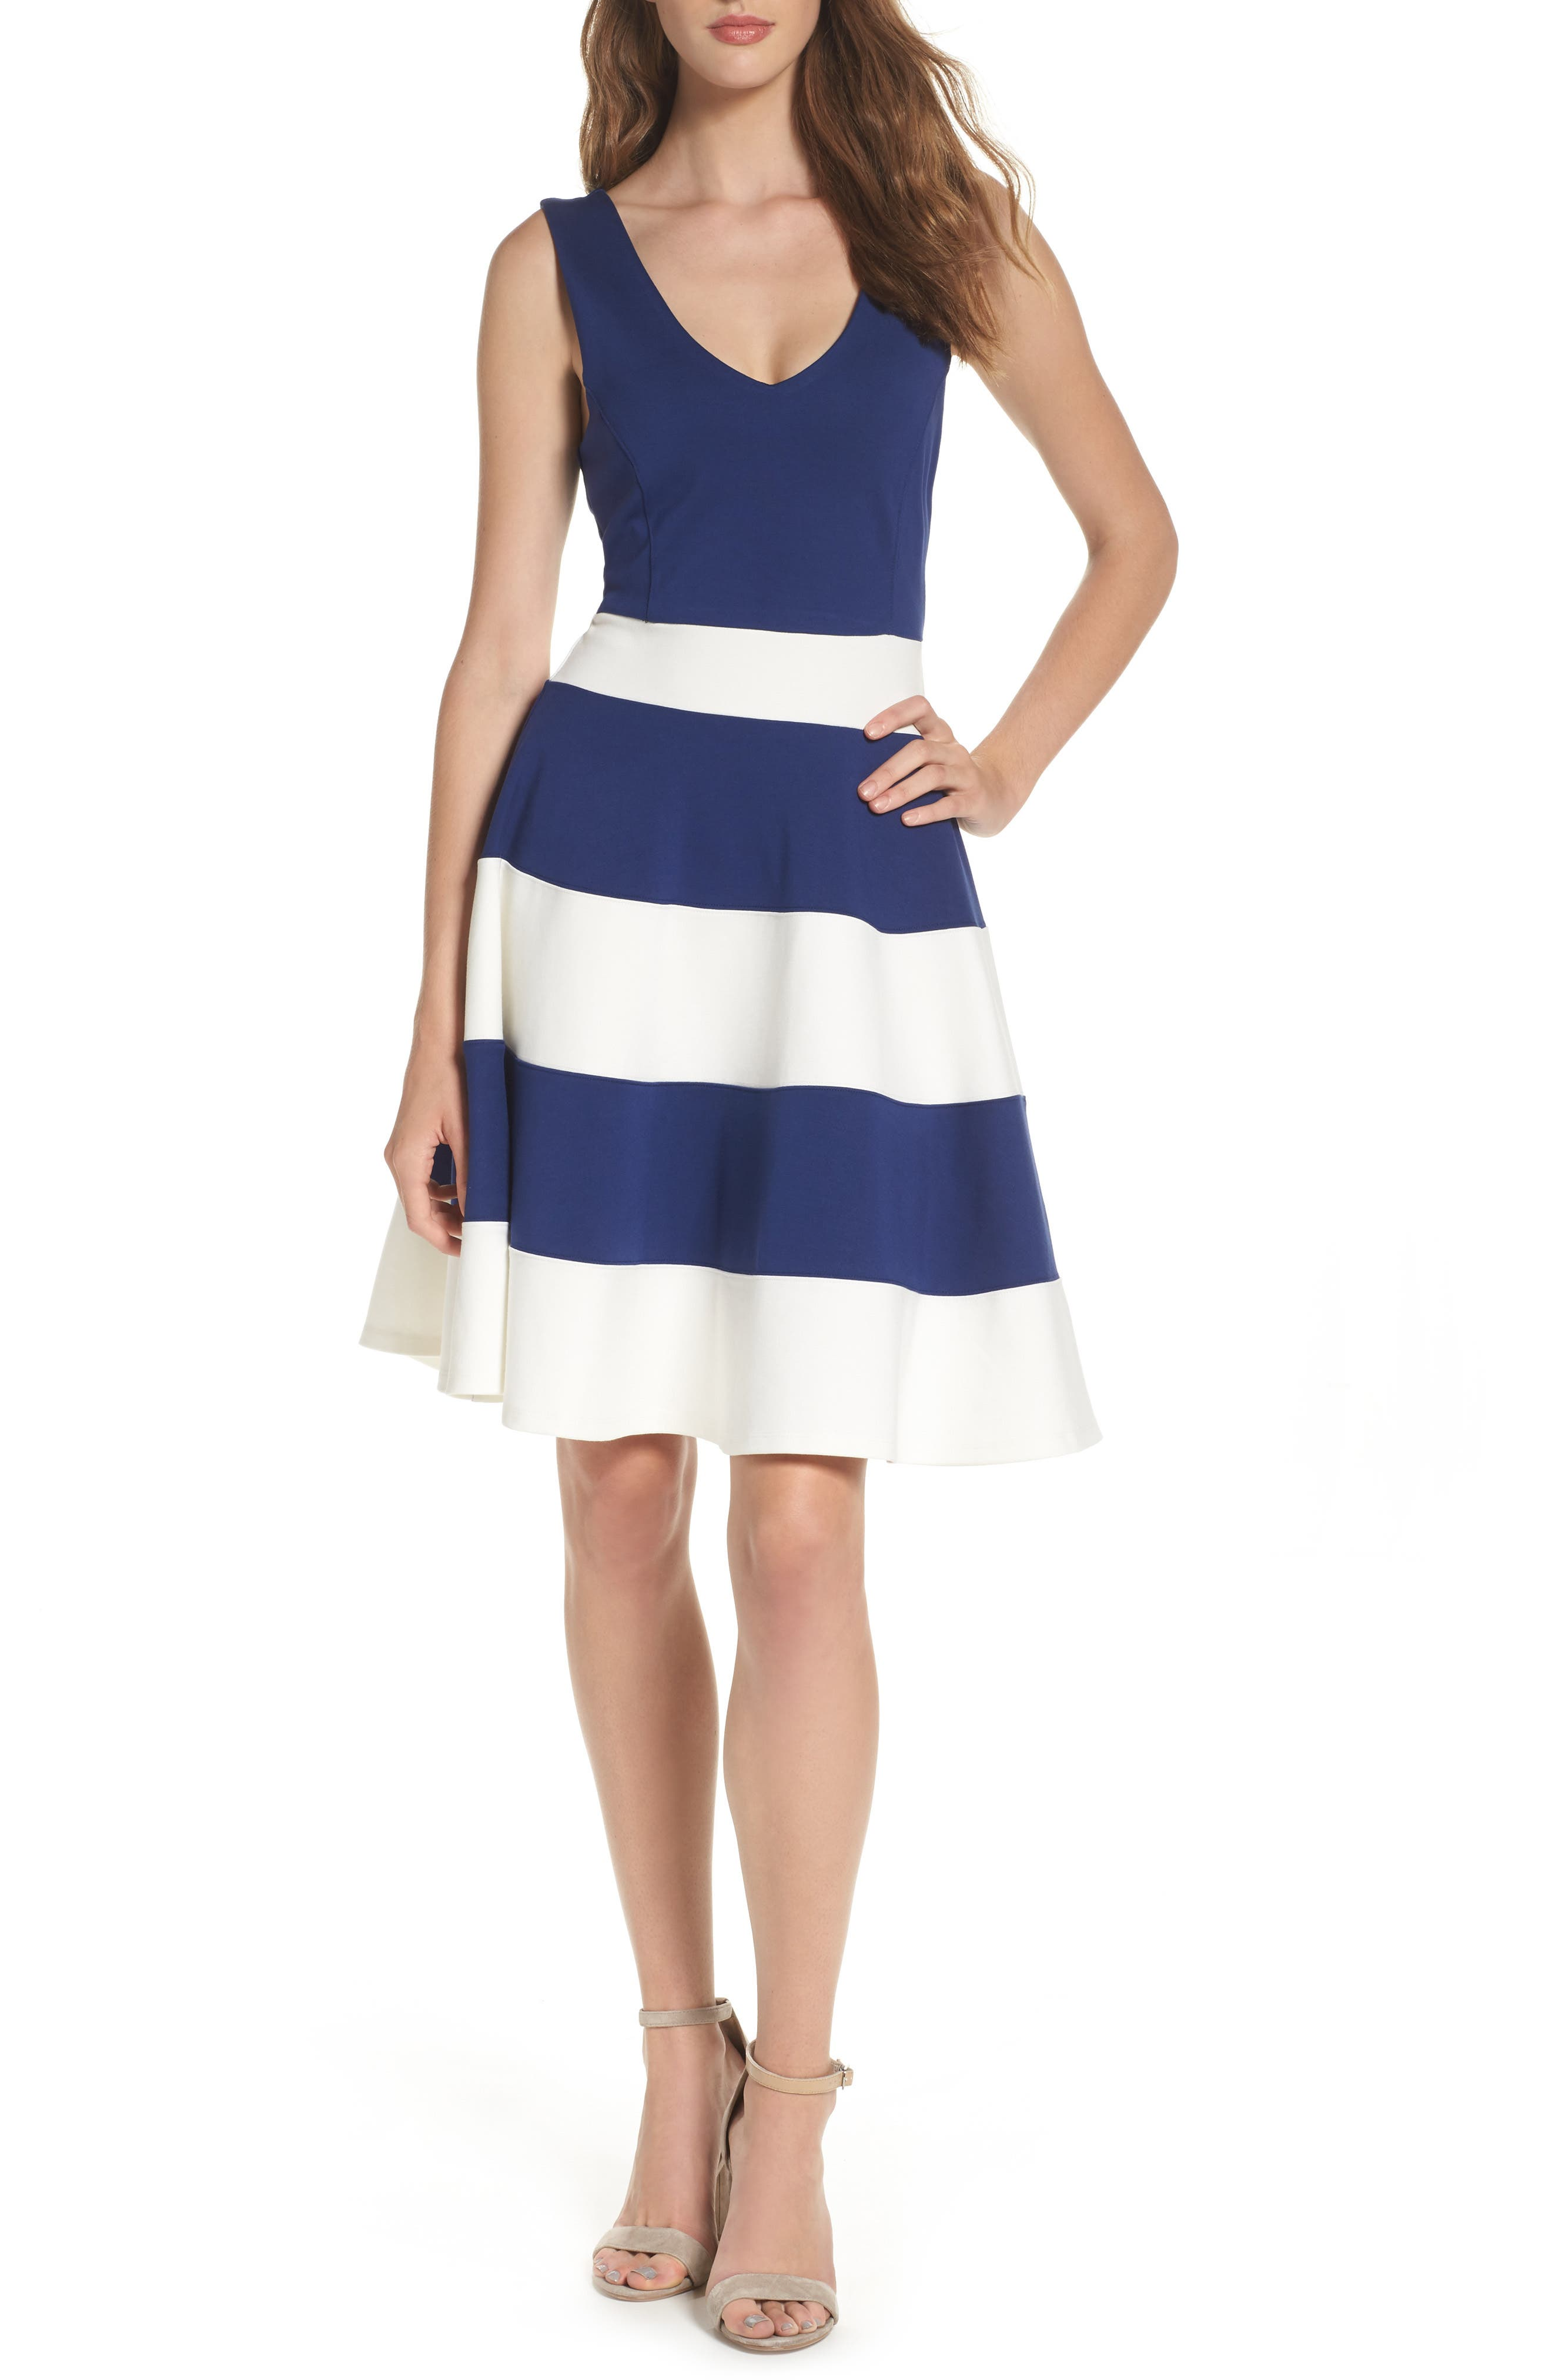 Joice Sleeveless Fit & Flare Dress,                         Main,                         color, 409